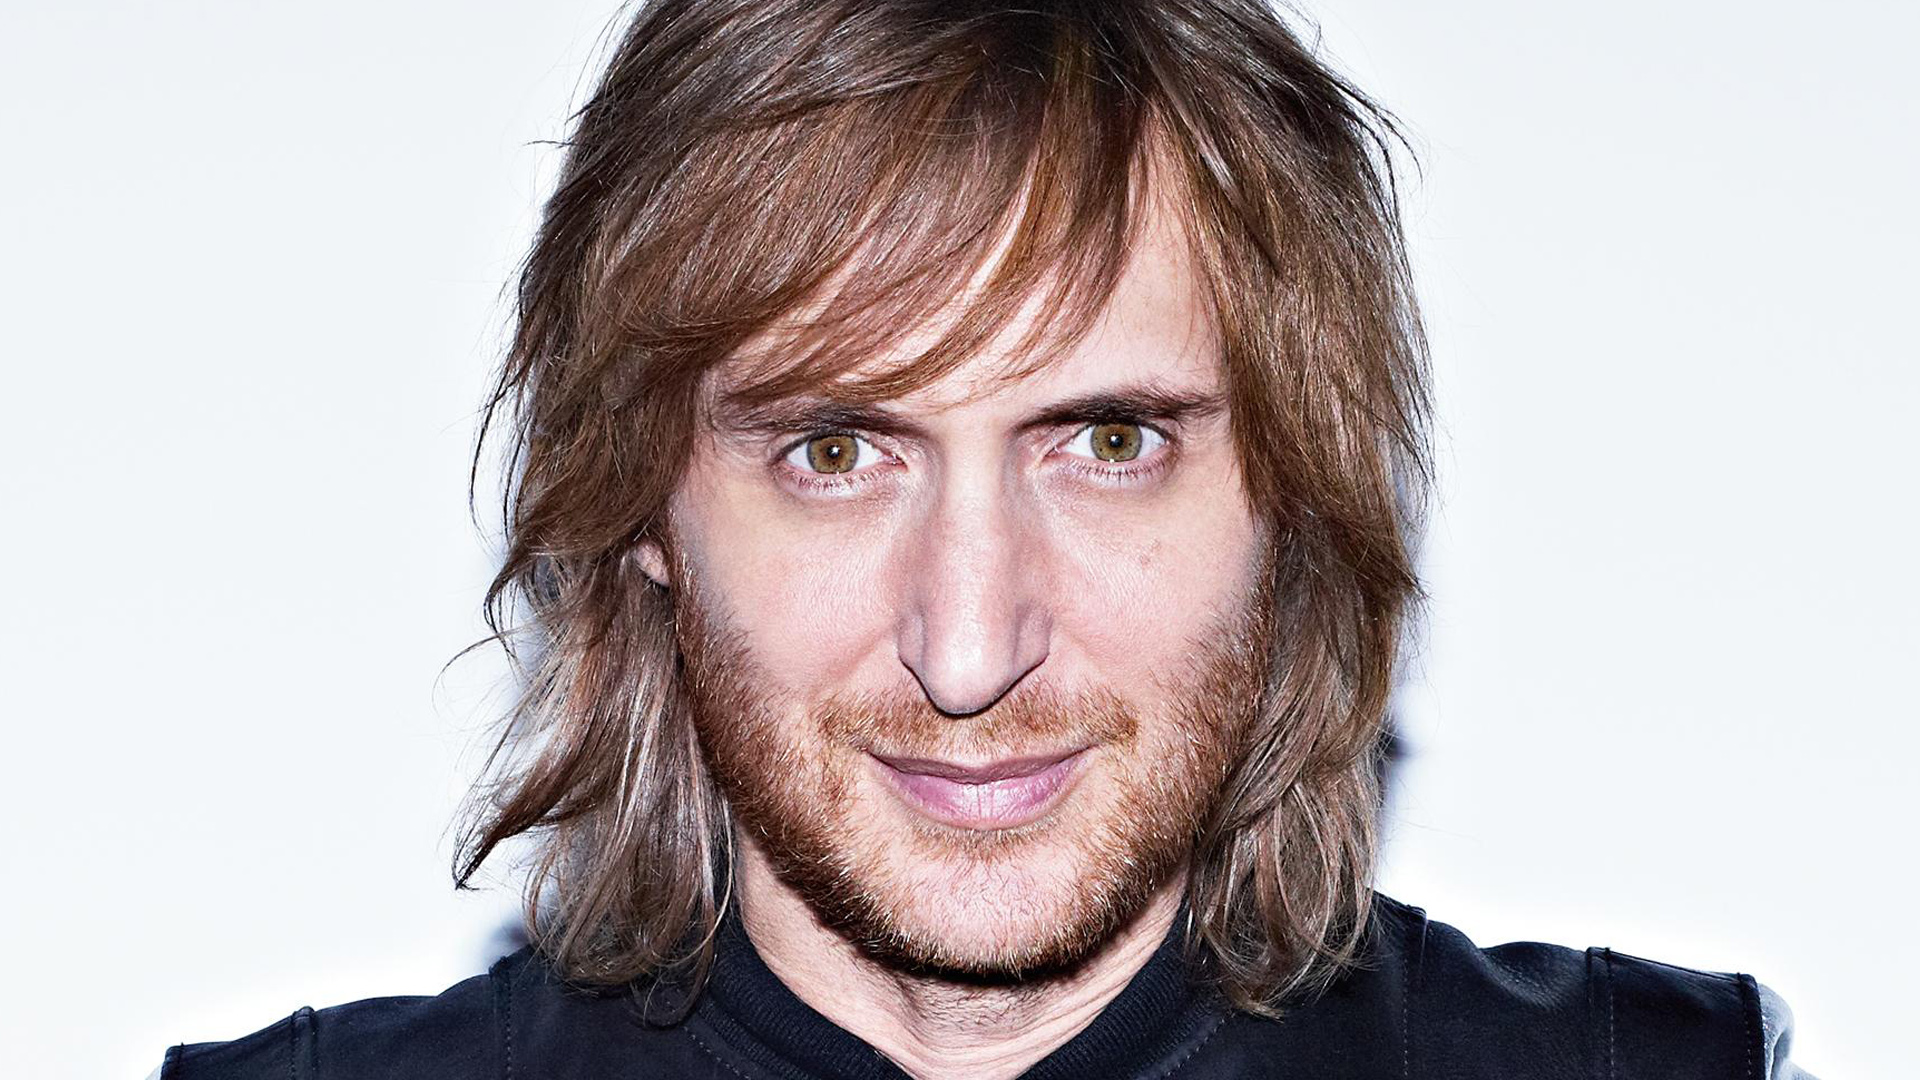 David Guetta or Avicii ?